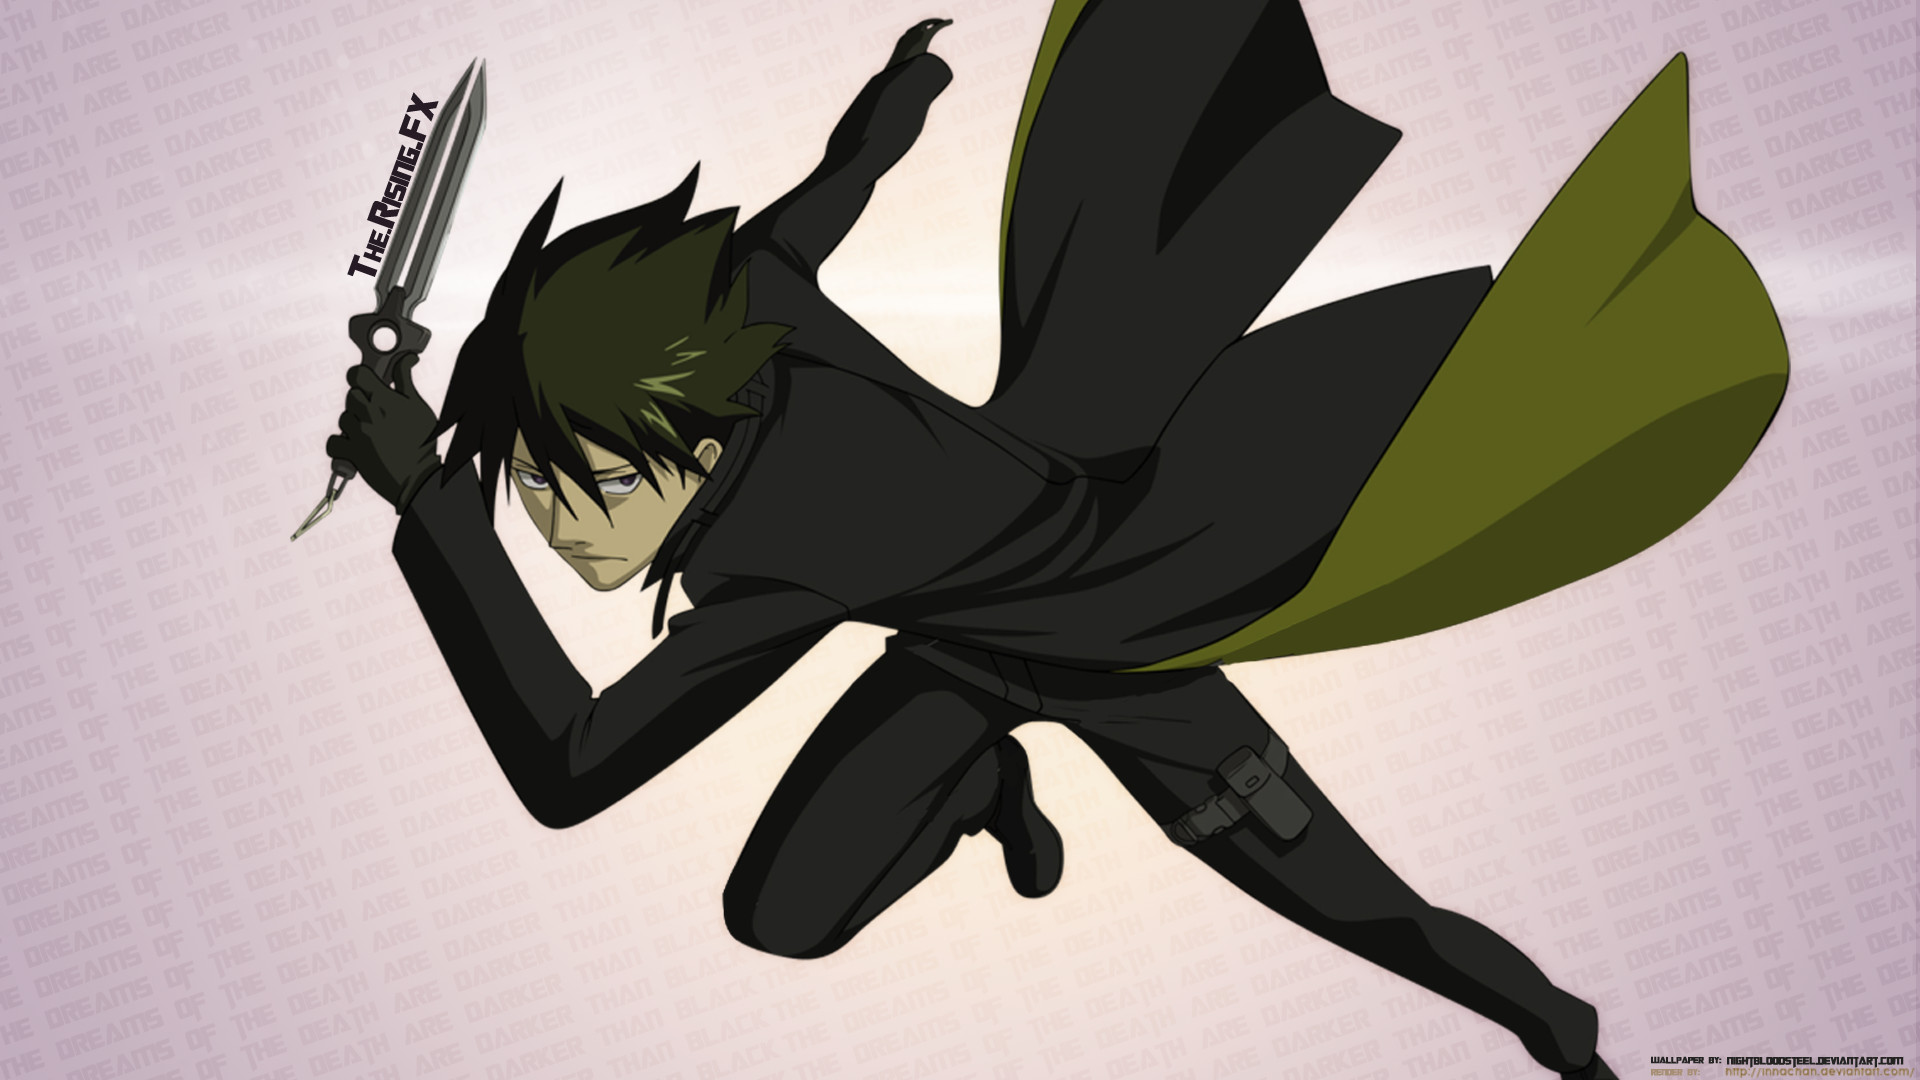 1920x1080 Darker Than Black 1080p by TheRisingFX Darker Than Black 1080p by  TheRisingFX